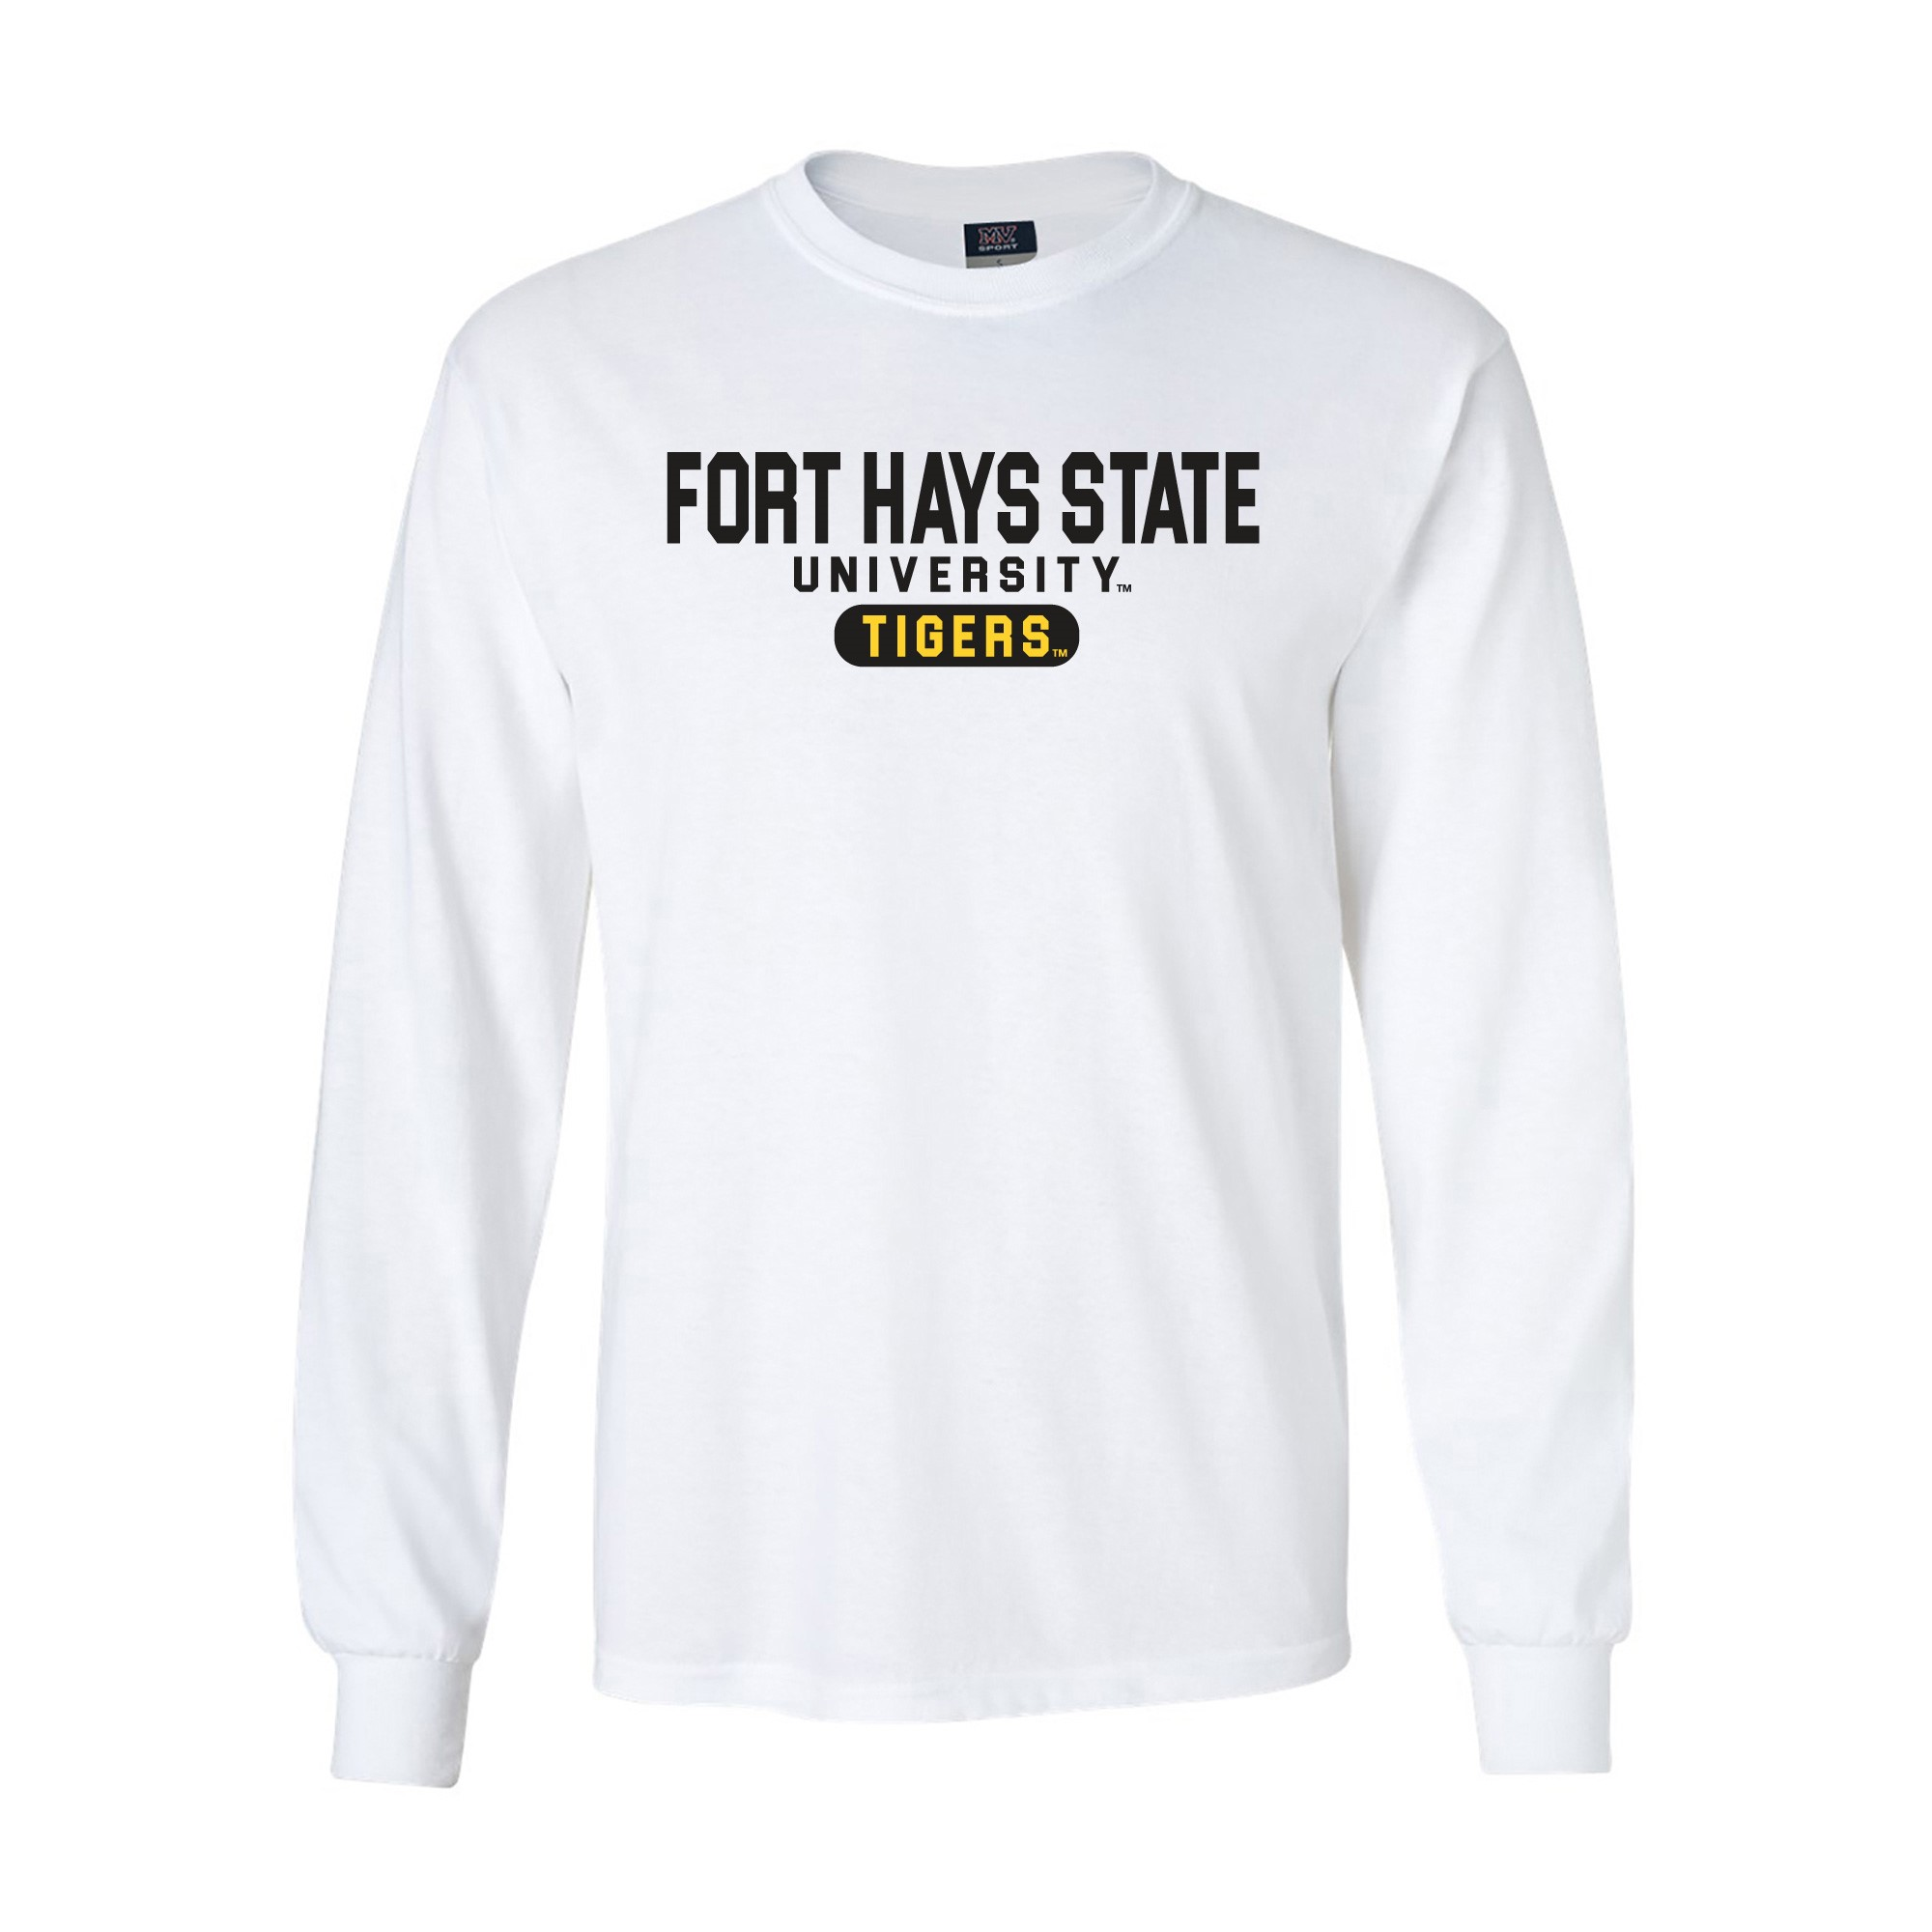 Image for the FHSU Tigers Classic Long Sleeve Tee, White, MV Sport product